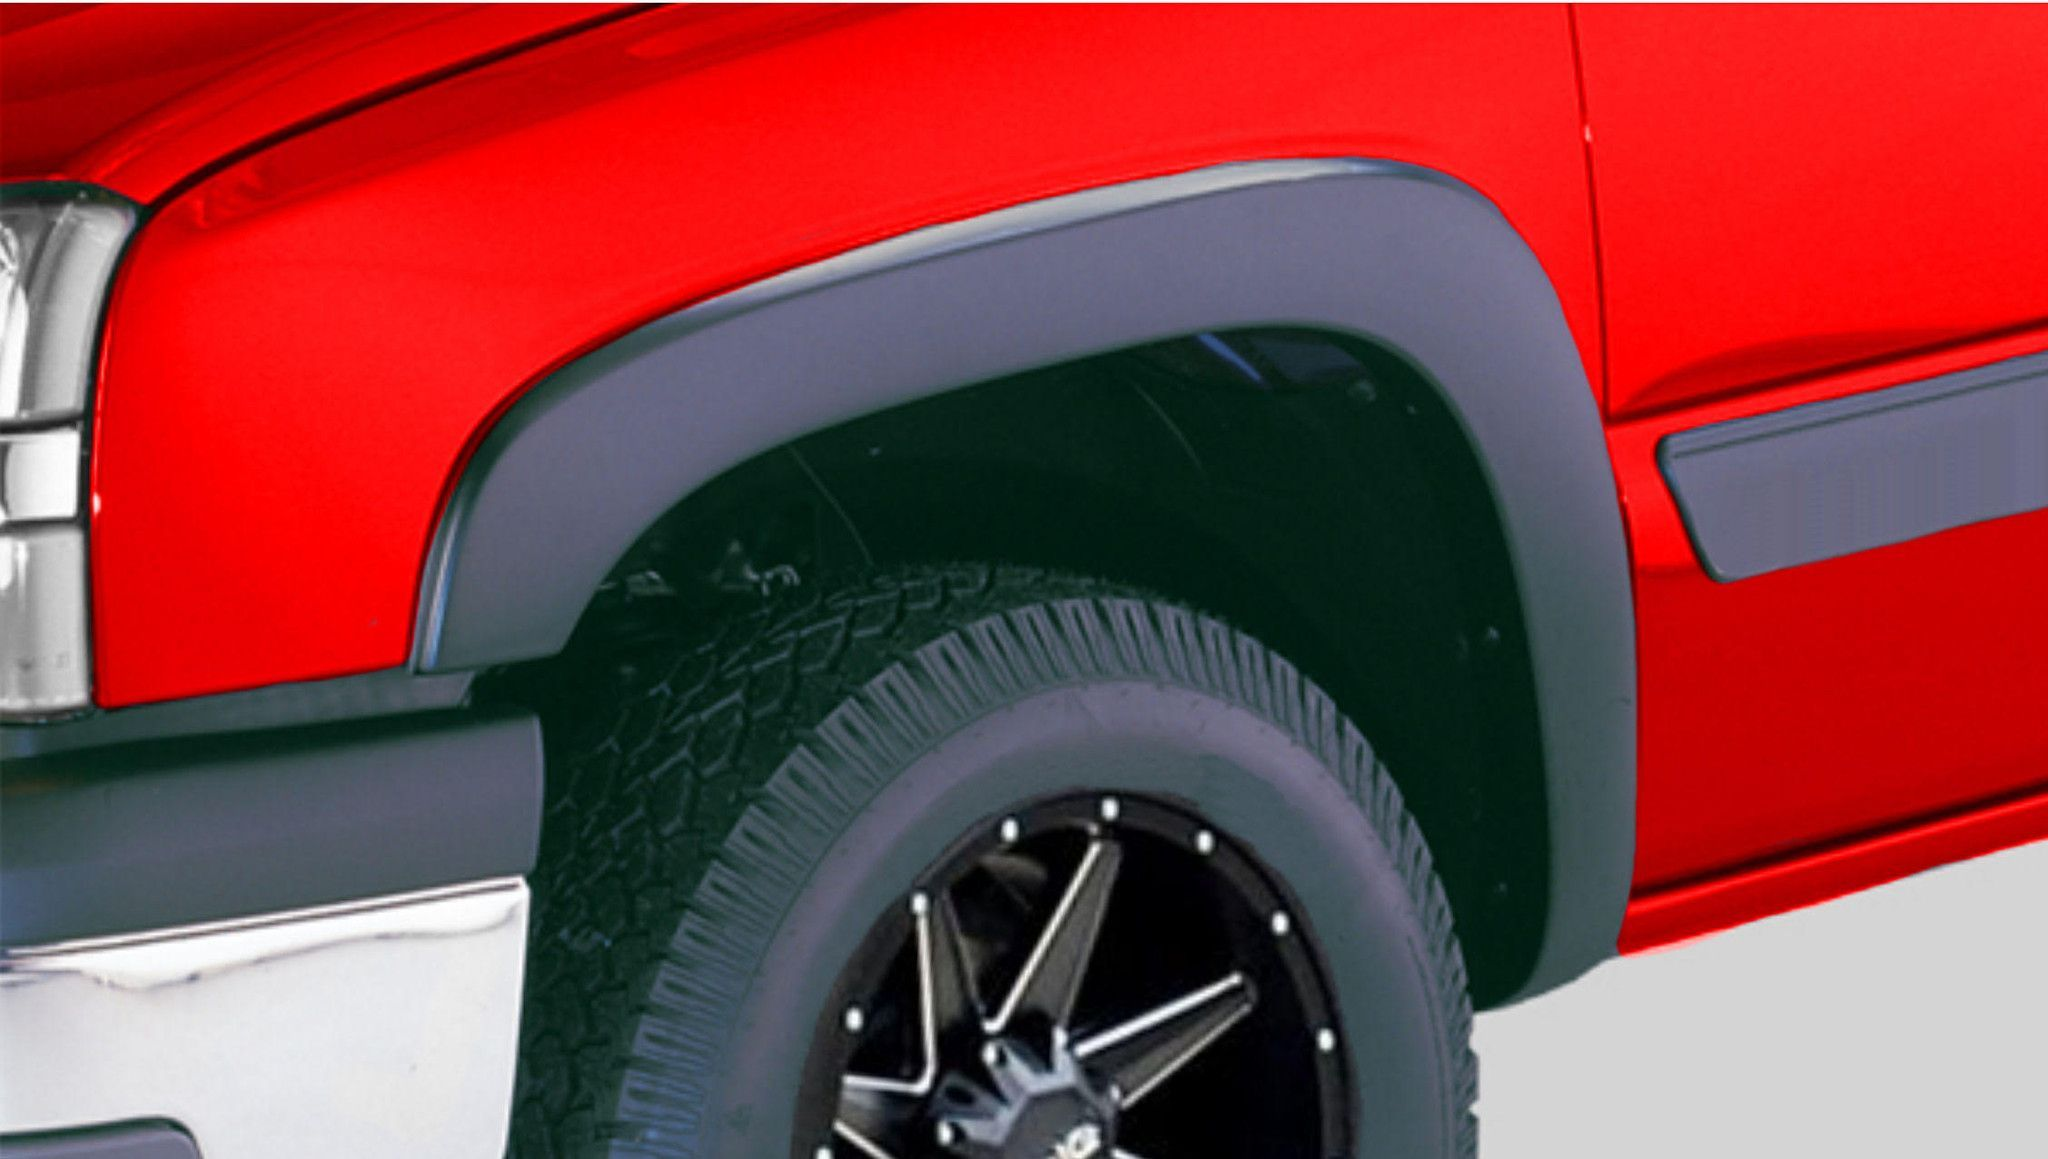 small resolution of fender flares fit 99 06 chevrolet avalanche suburban and gmc sierra yukon xl set of 4 paintable matte black